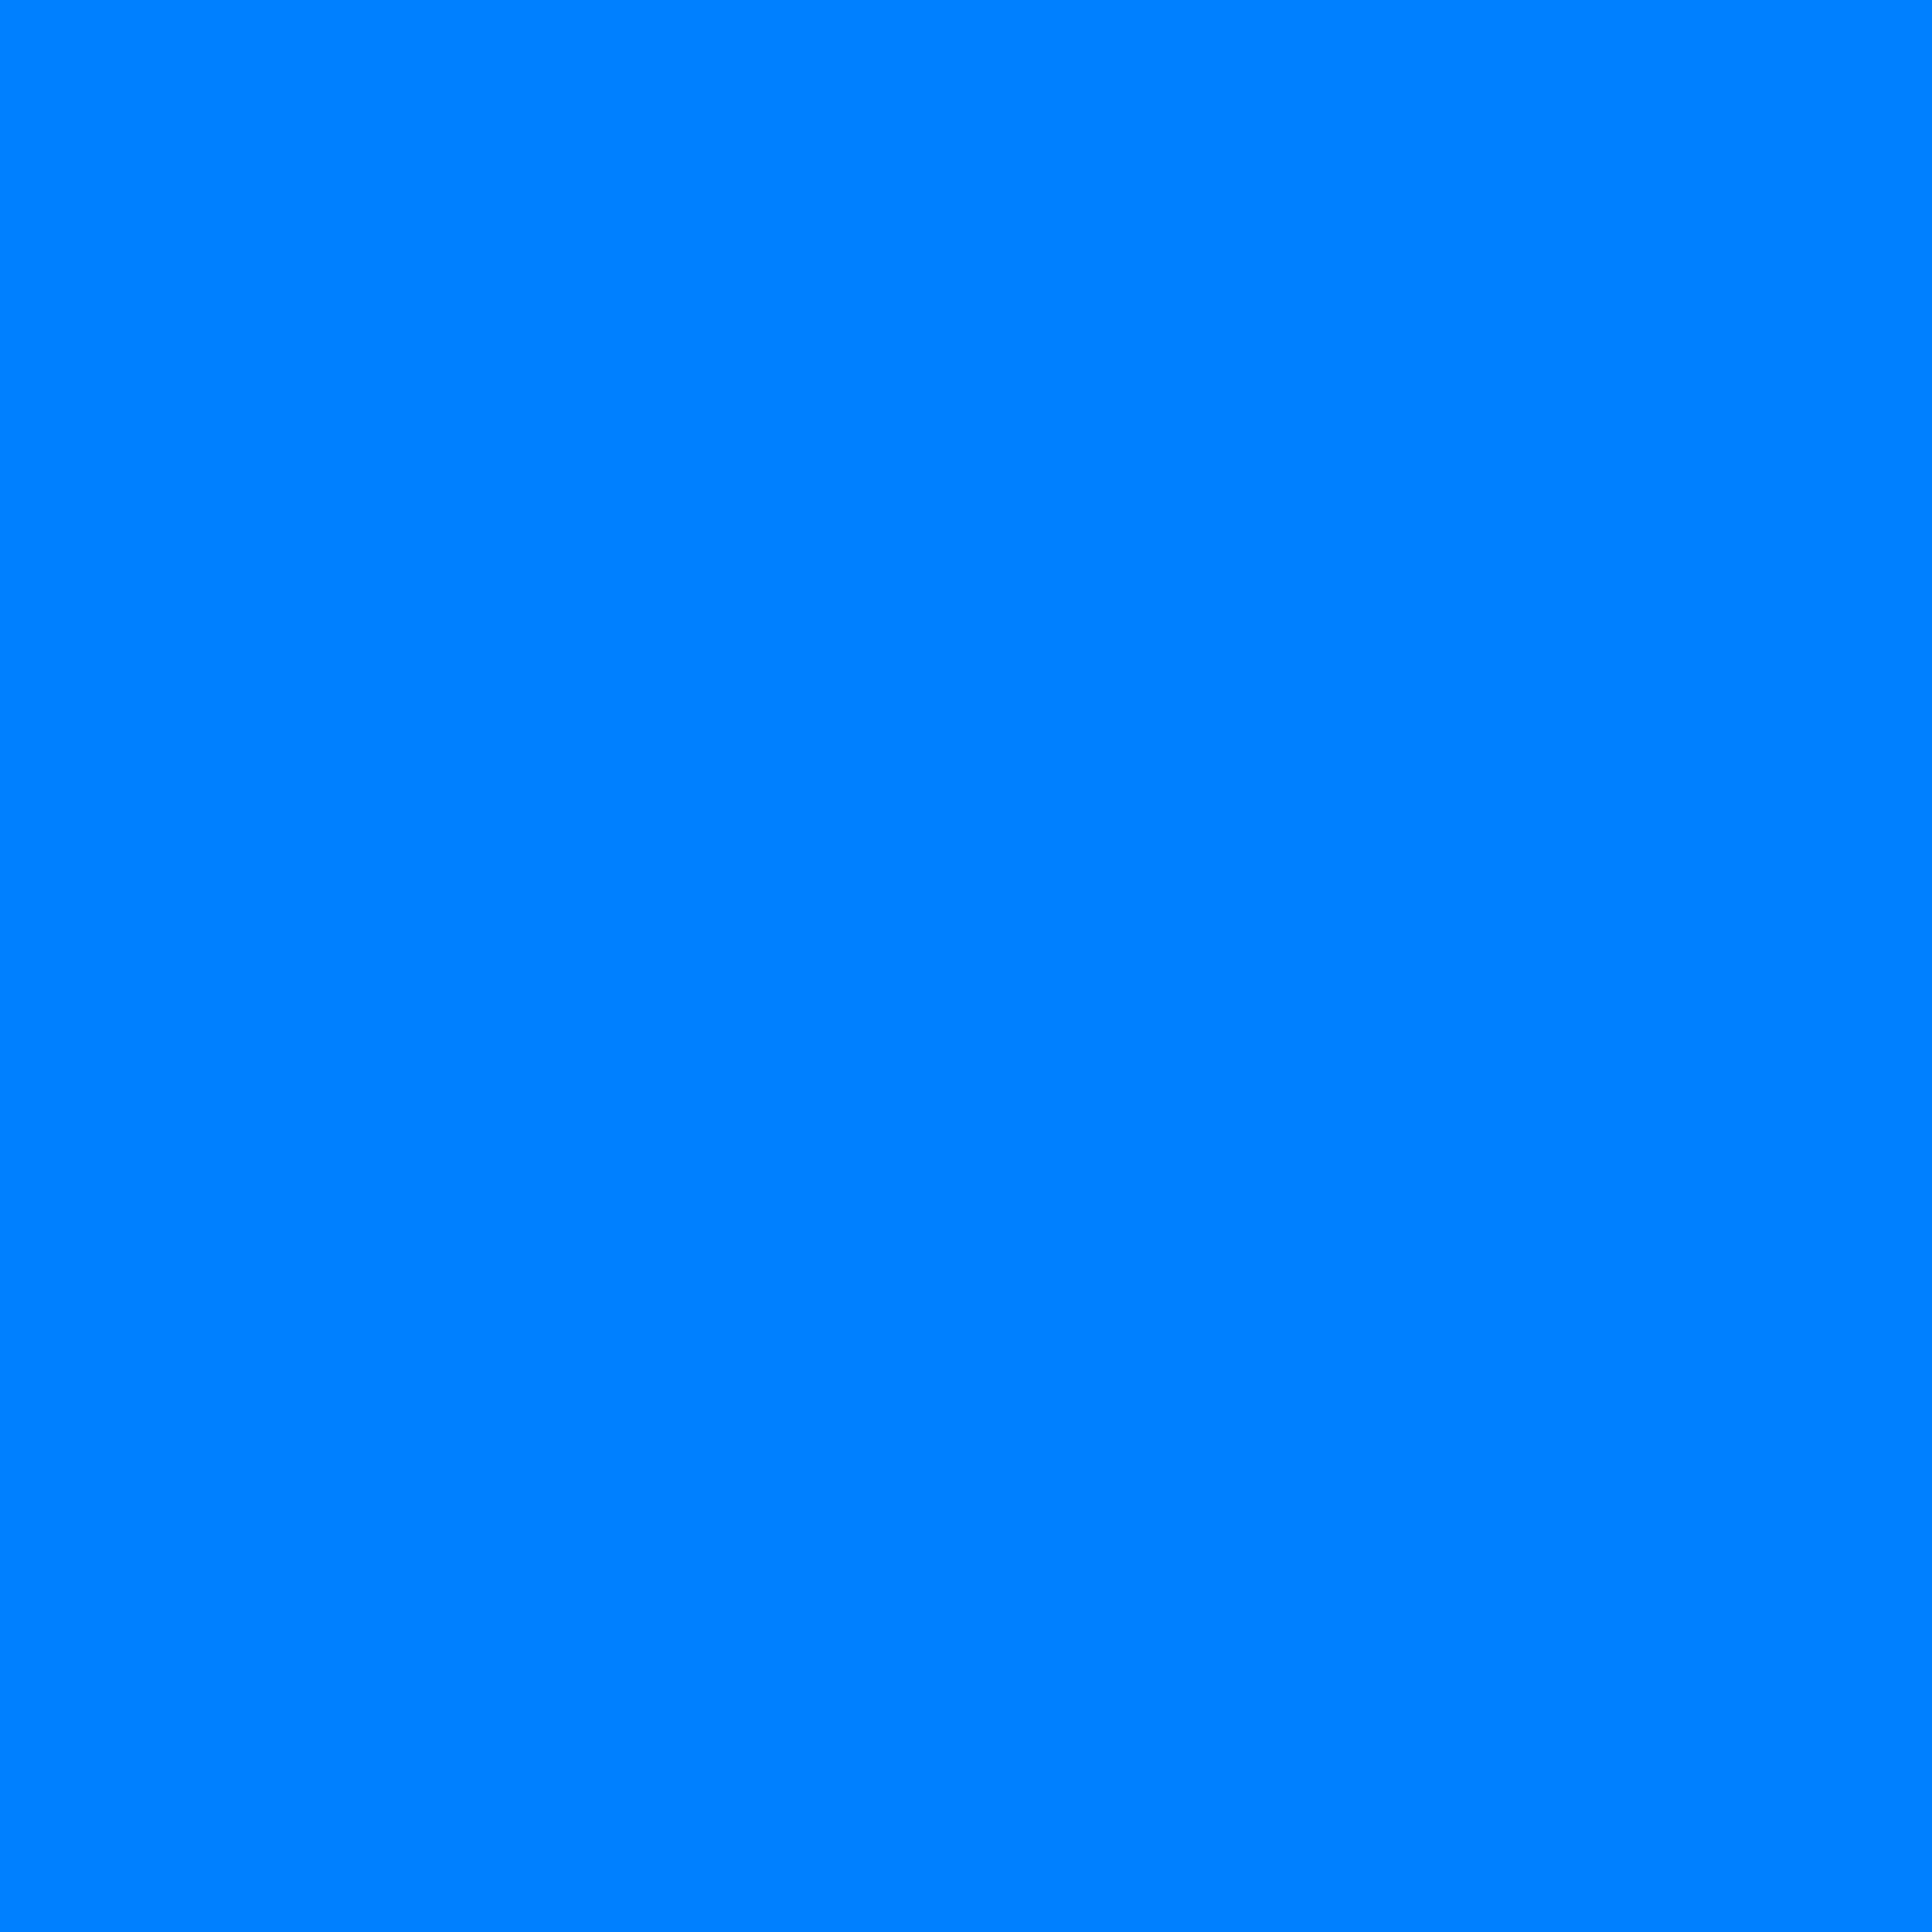 2048x2048 Azure Solid Color Background